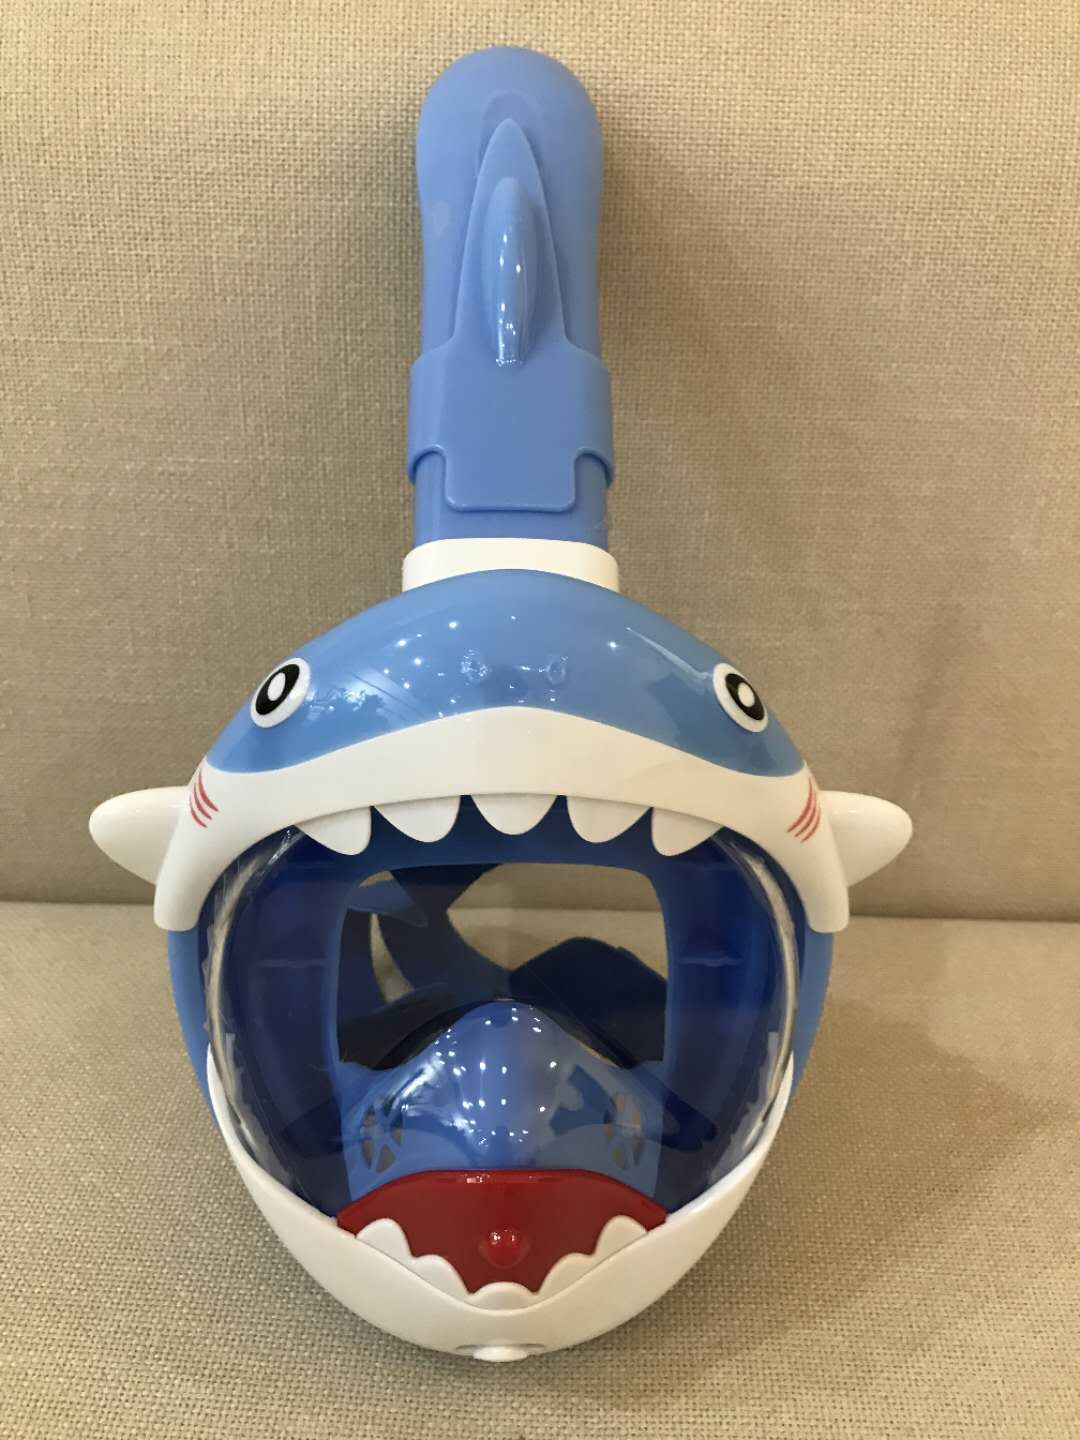 New Shark Mask for Junior